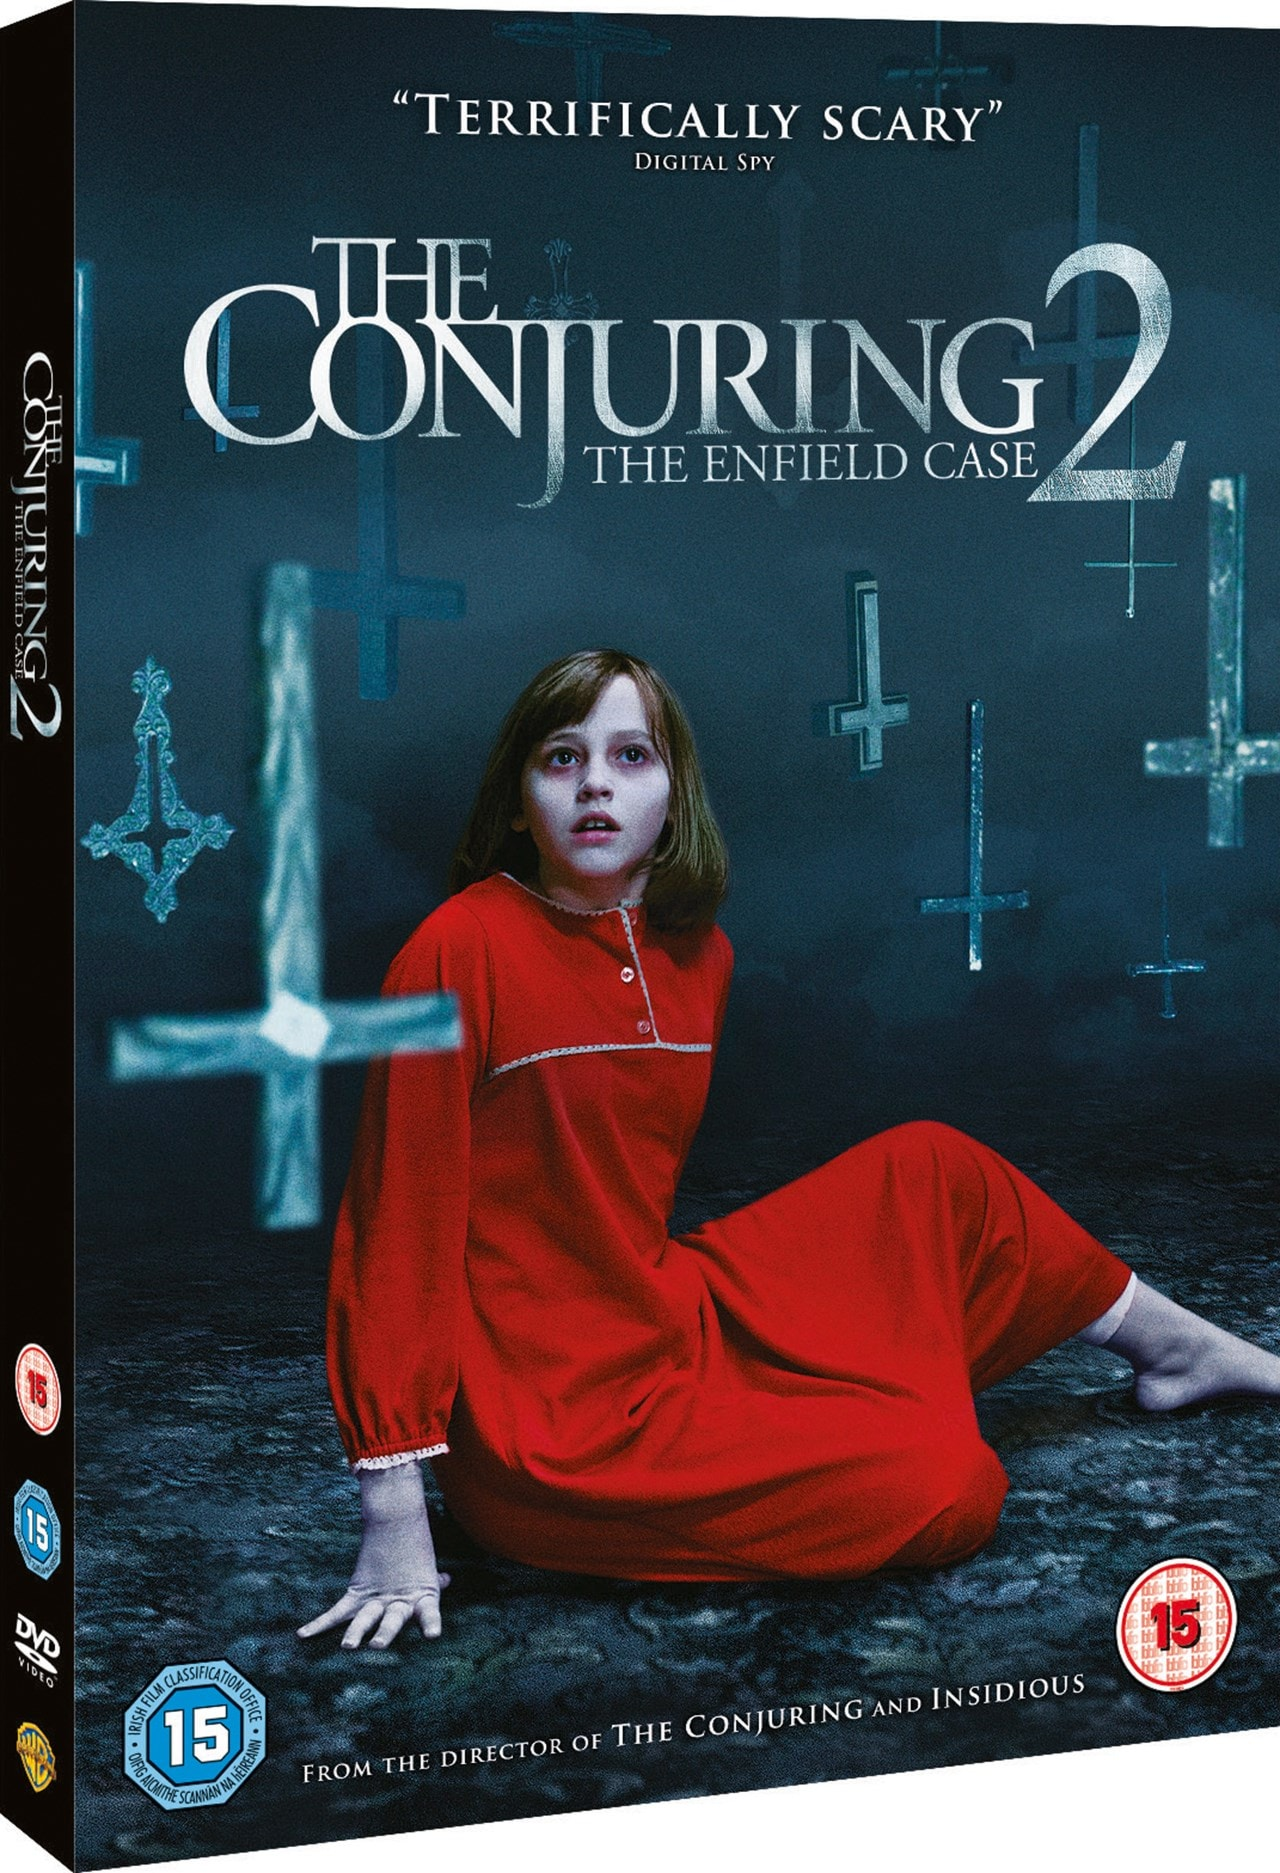 The Conjuring 2 - The Enfield Case - 4